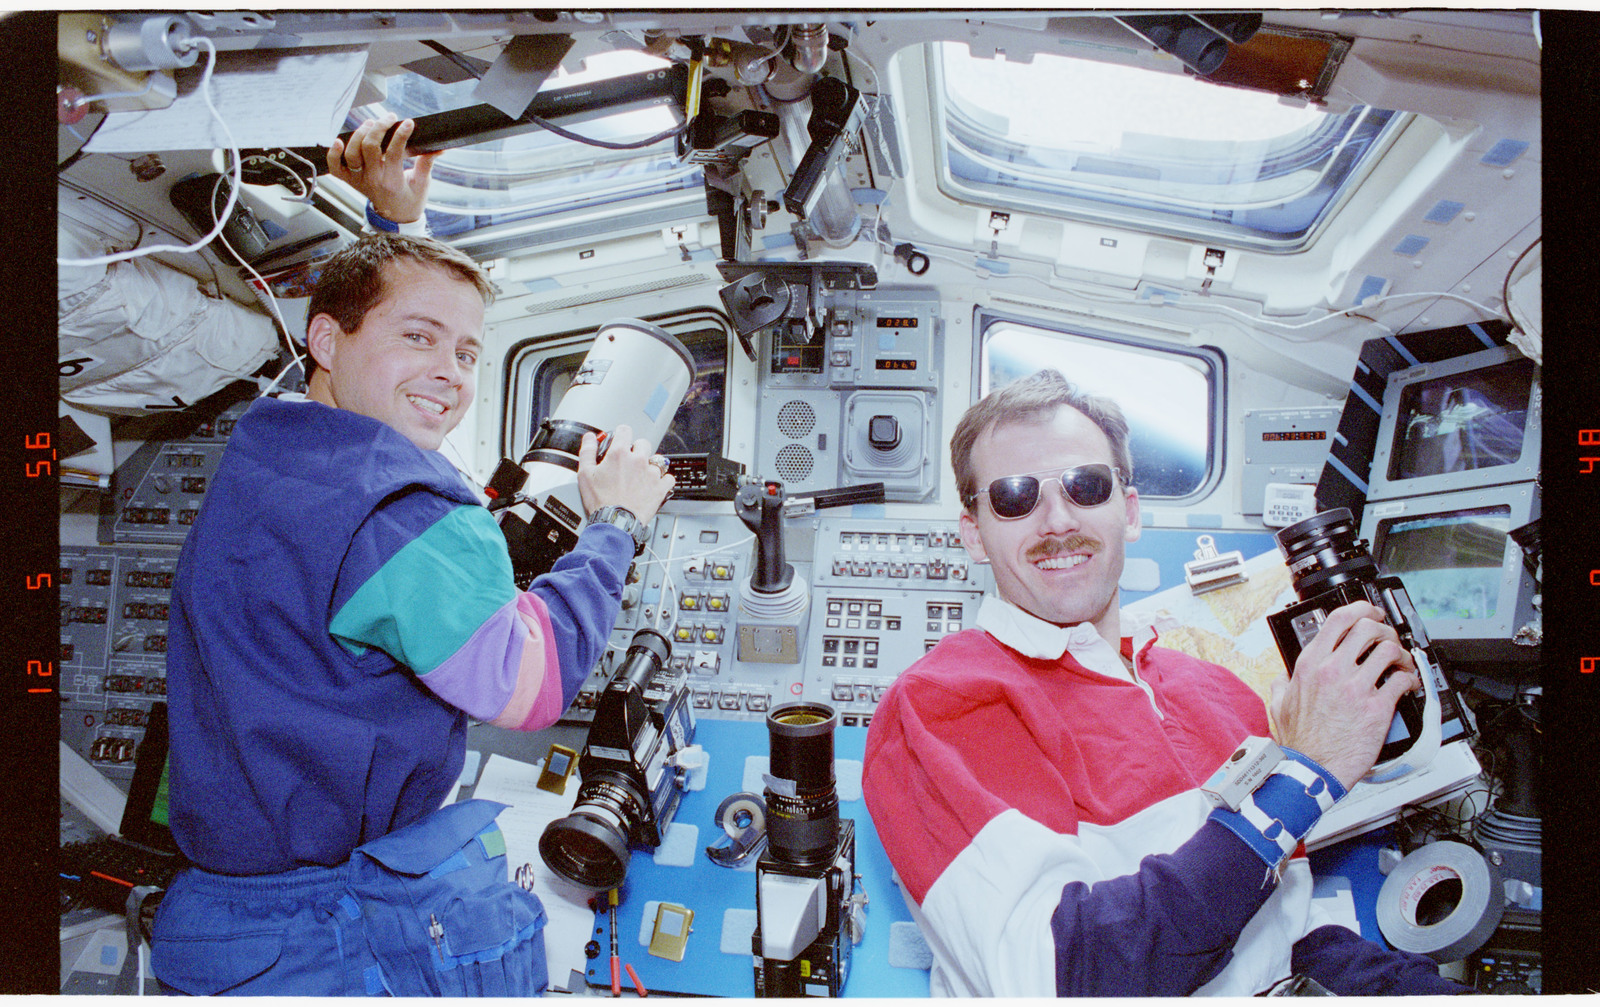 STS068-63-001 - STS-068 - STS-68 crew activities on flight deck